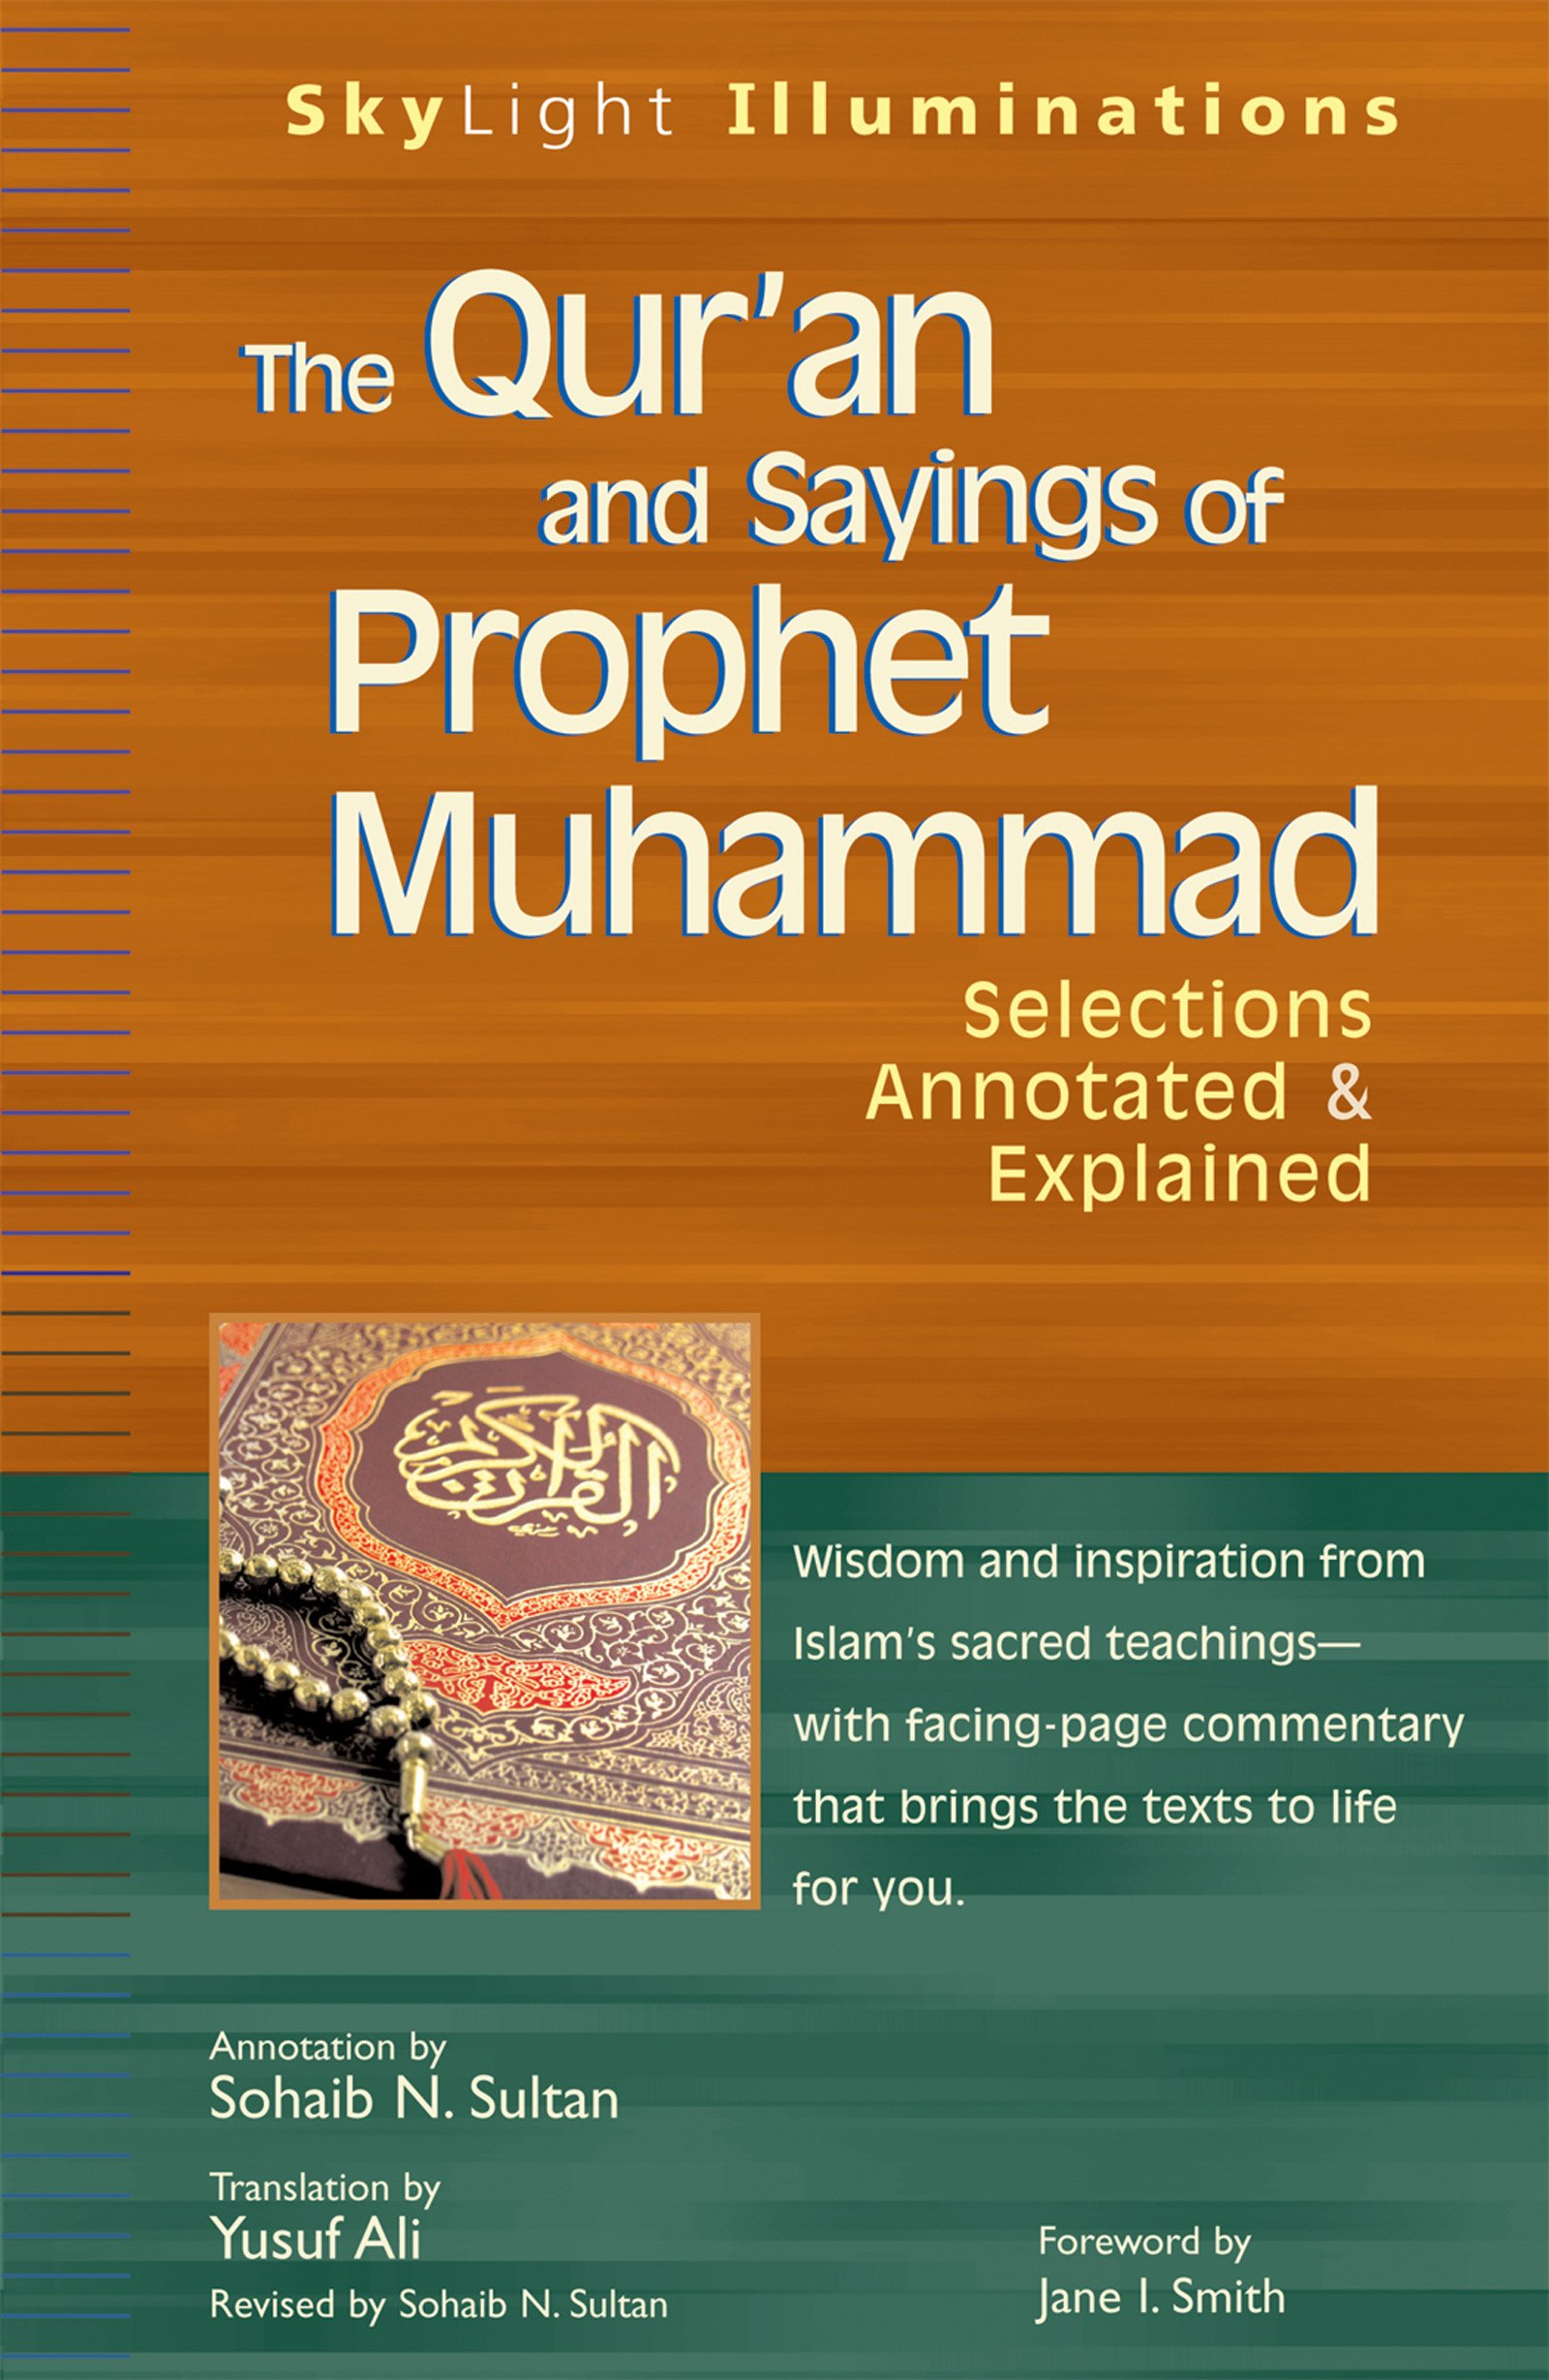 The Qur'an And Sayings Of Prophet Muhammad: Selections Annotated &  Explained (skylight Illuminations): Sohaib N Sultan, Yusuf Ali, Jane I  Smith: